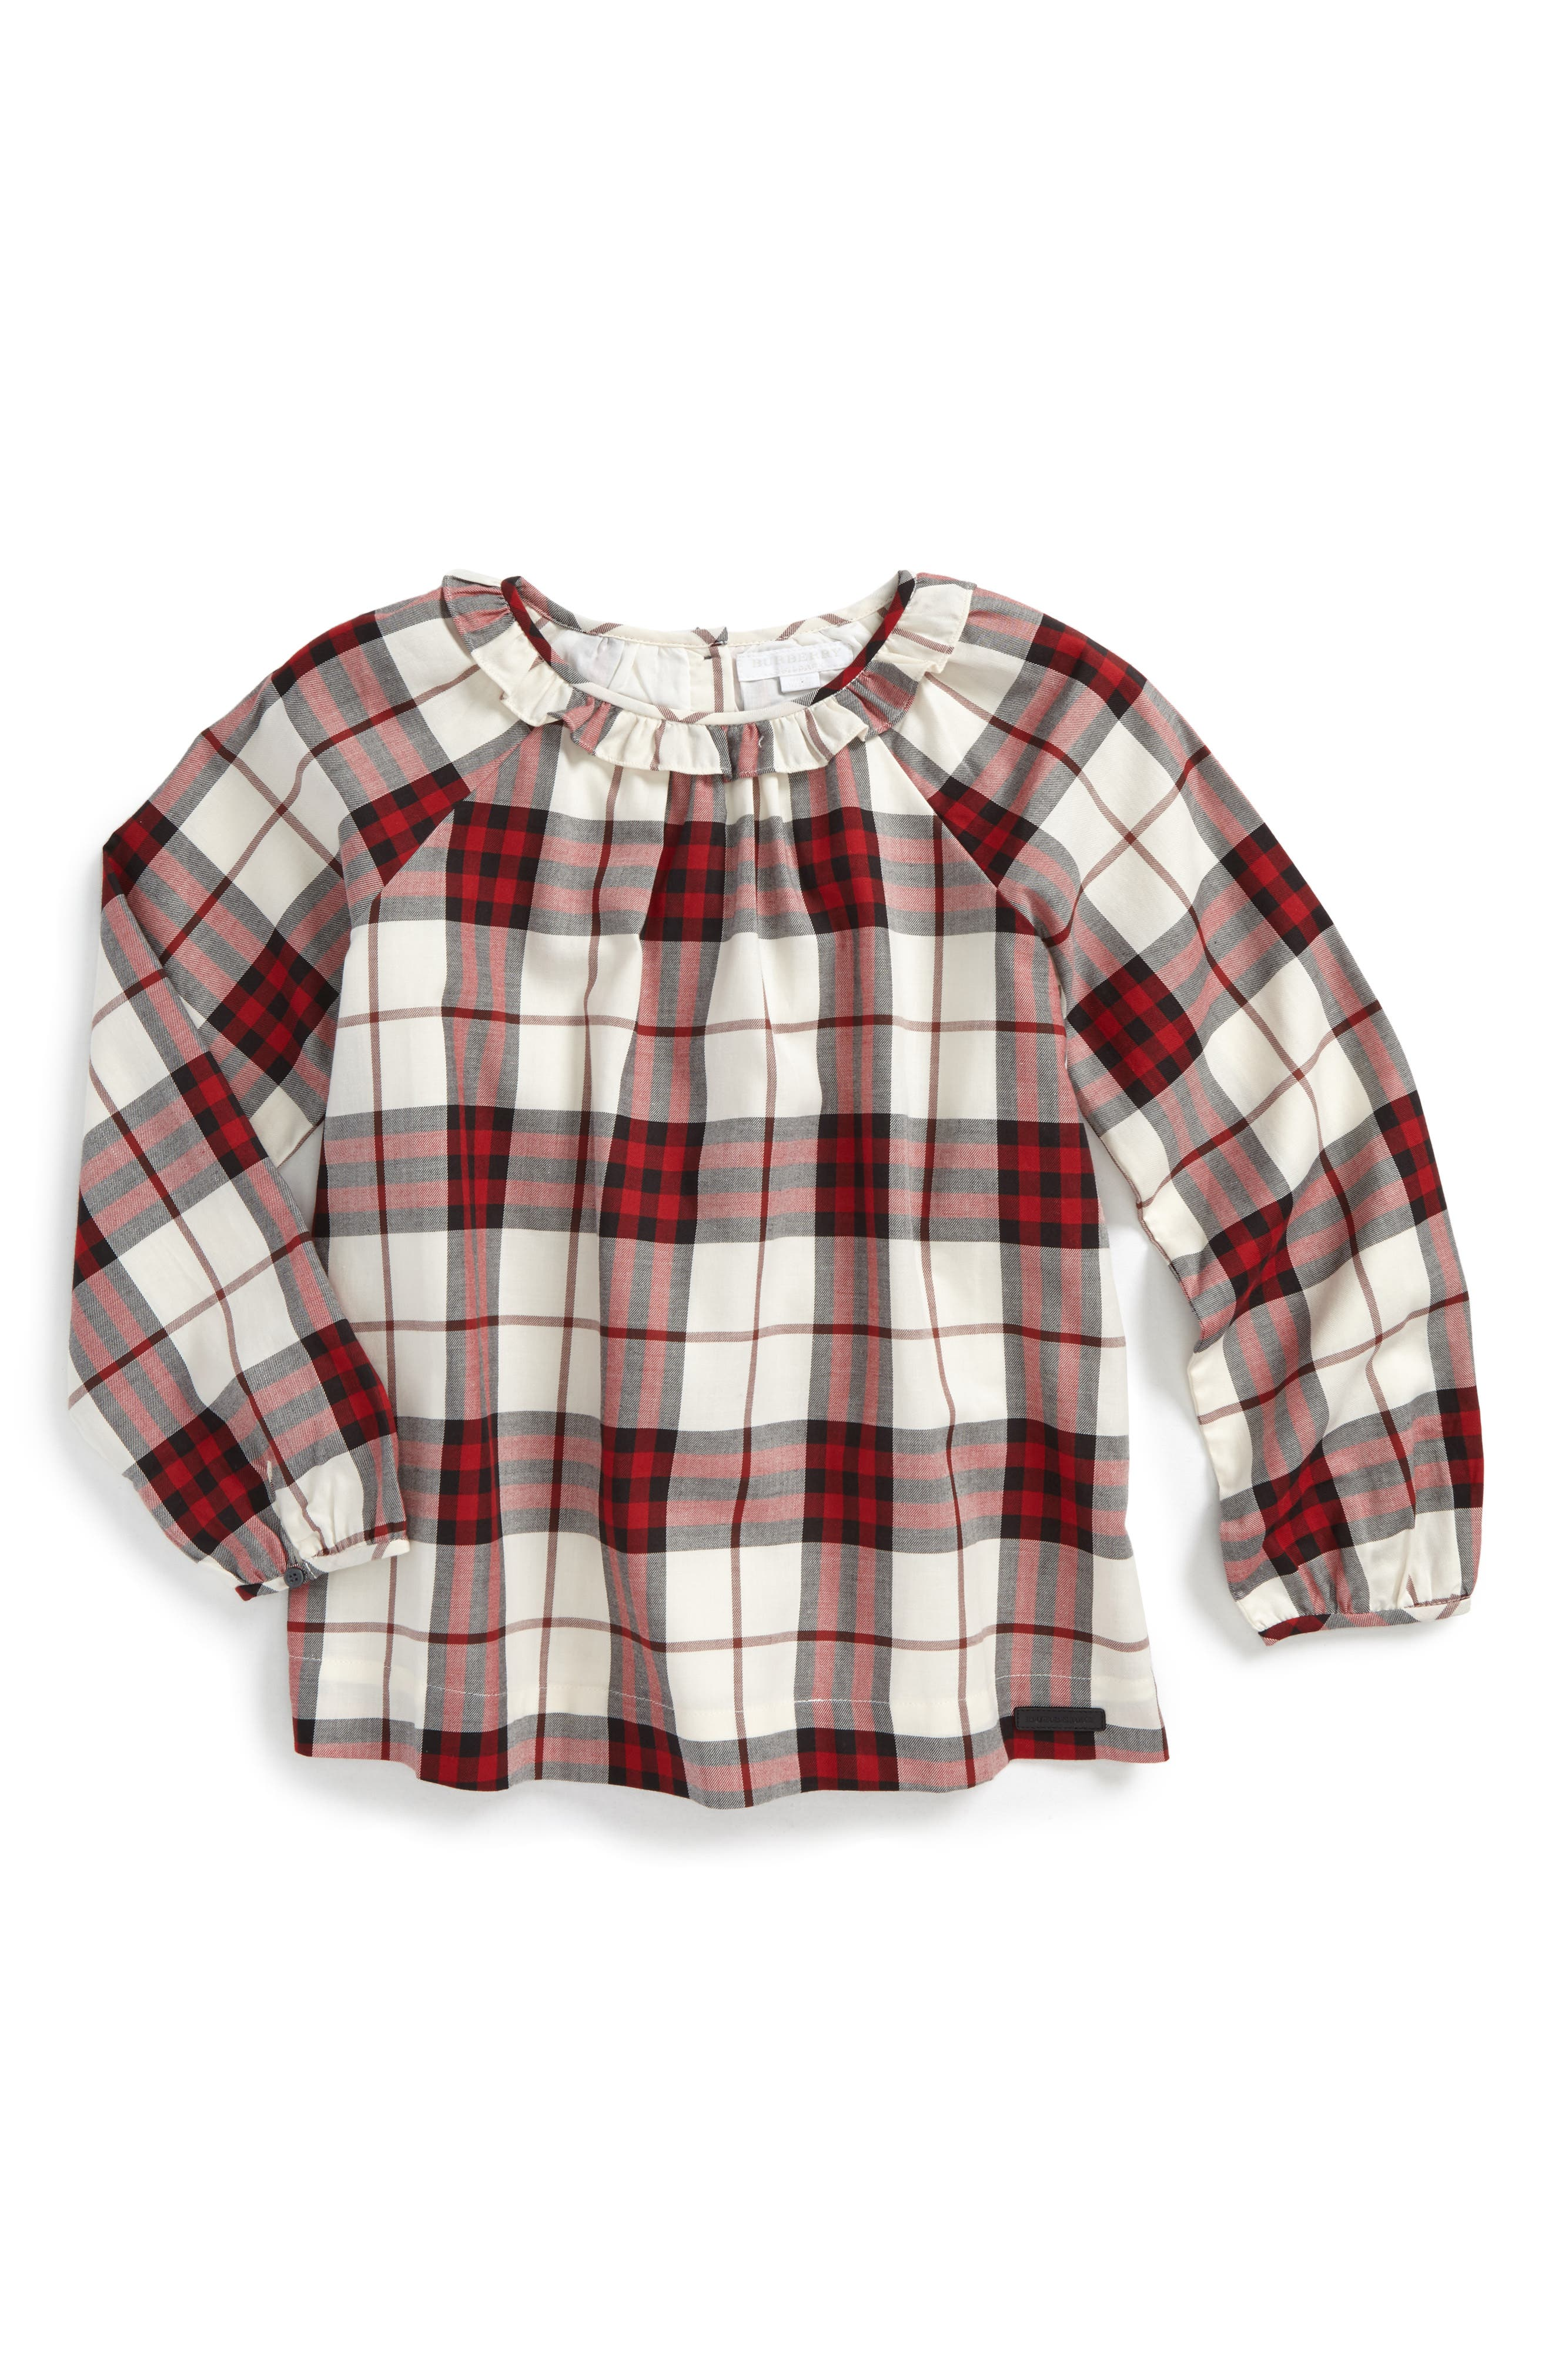 Main Image - Burberry Karly Check Cotton Top (Little Girls & Big Girls)